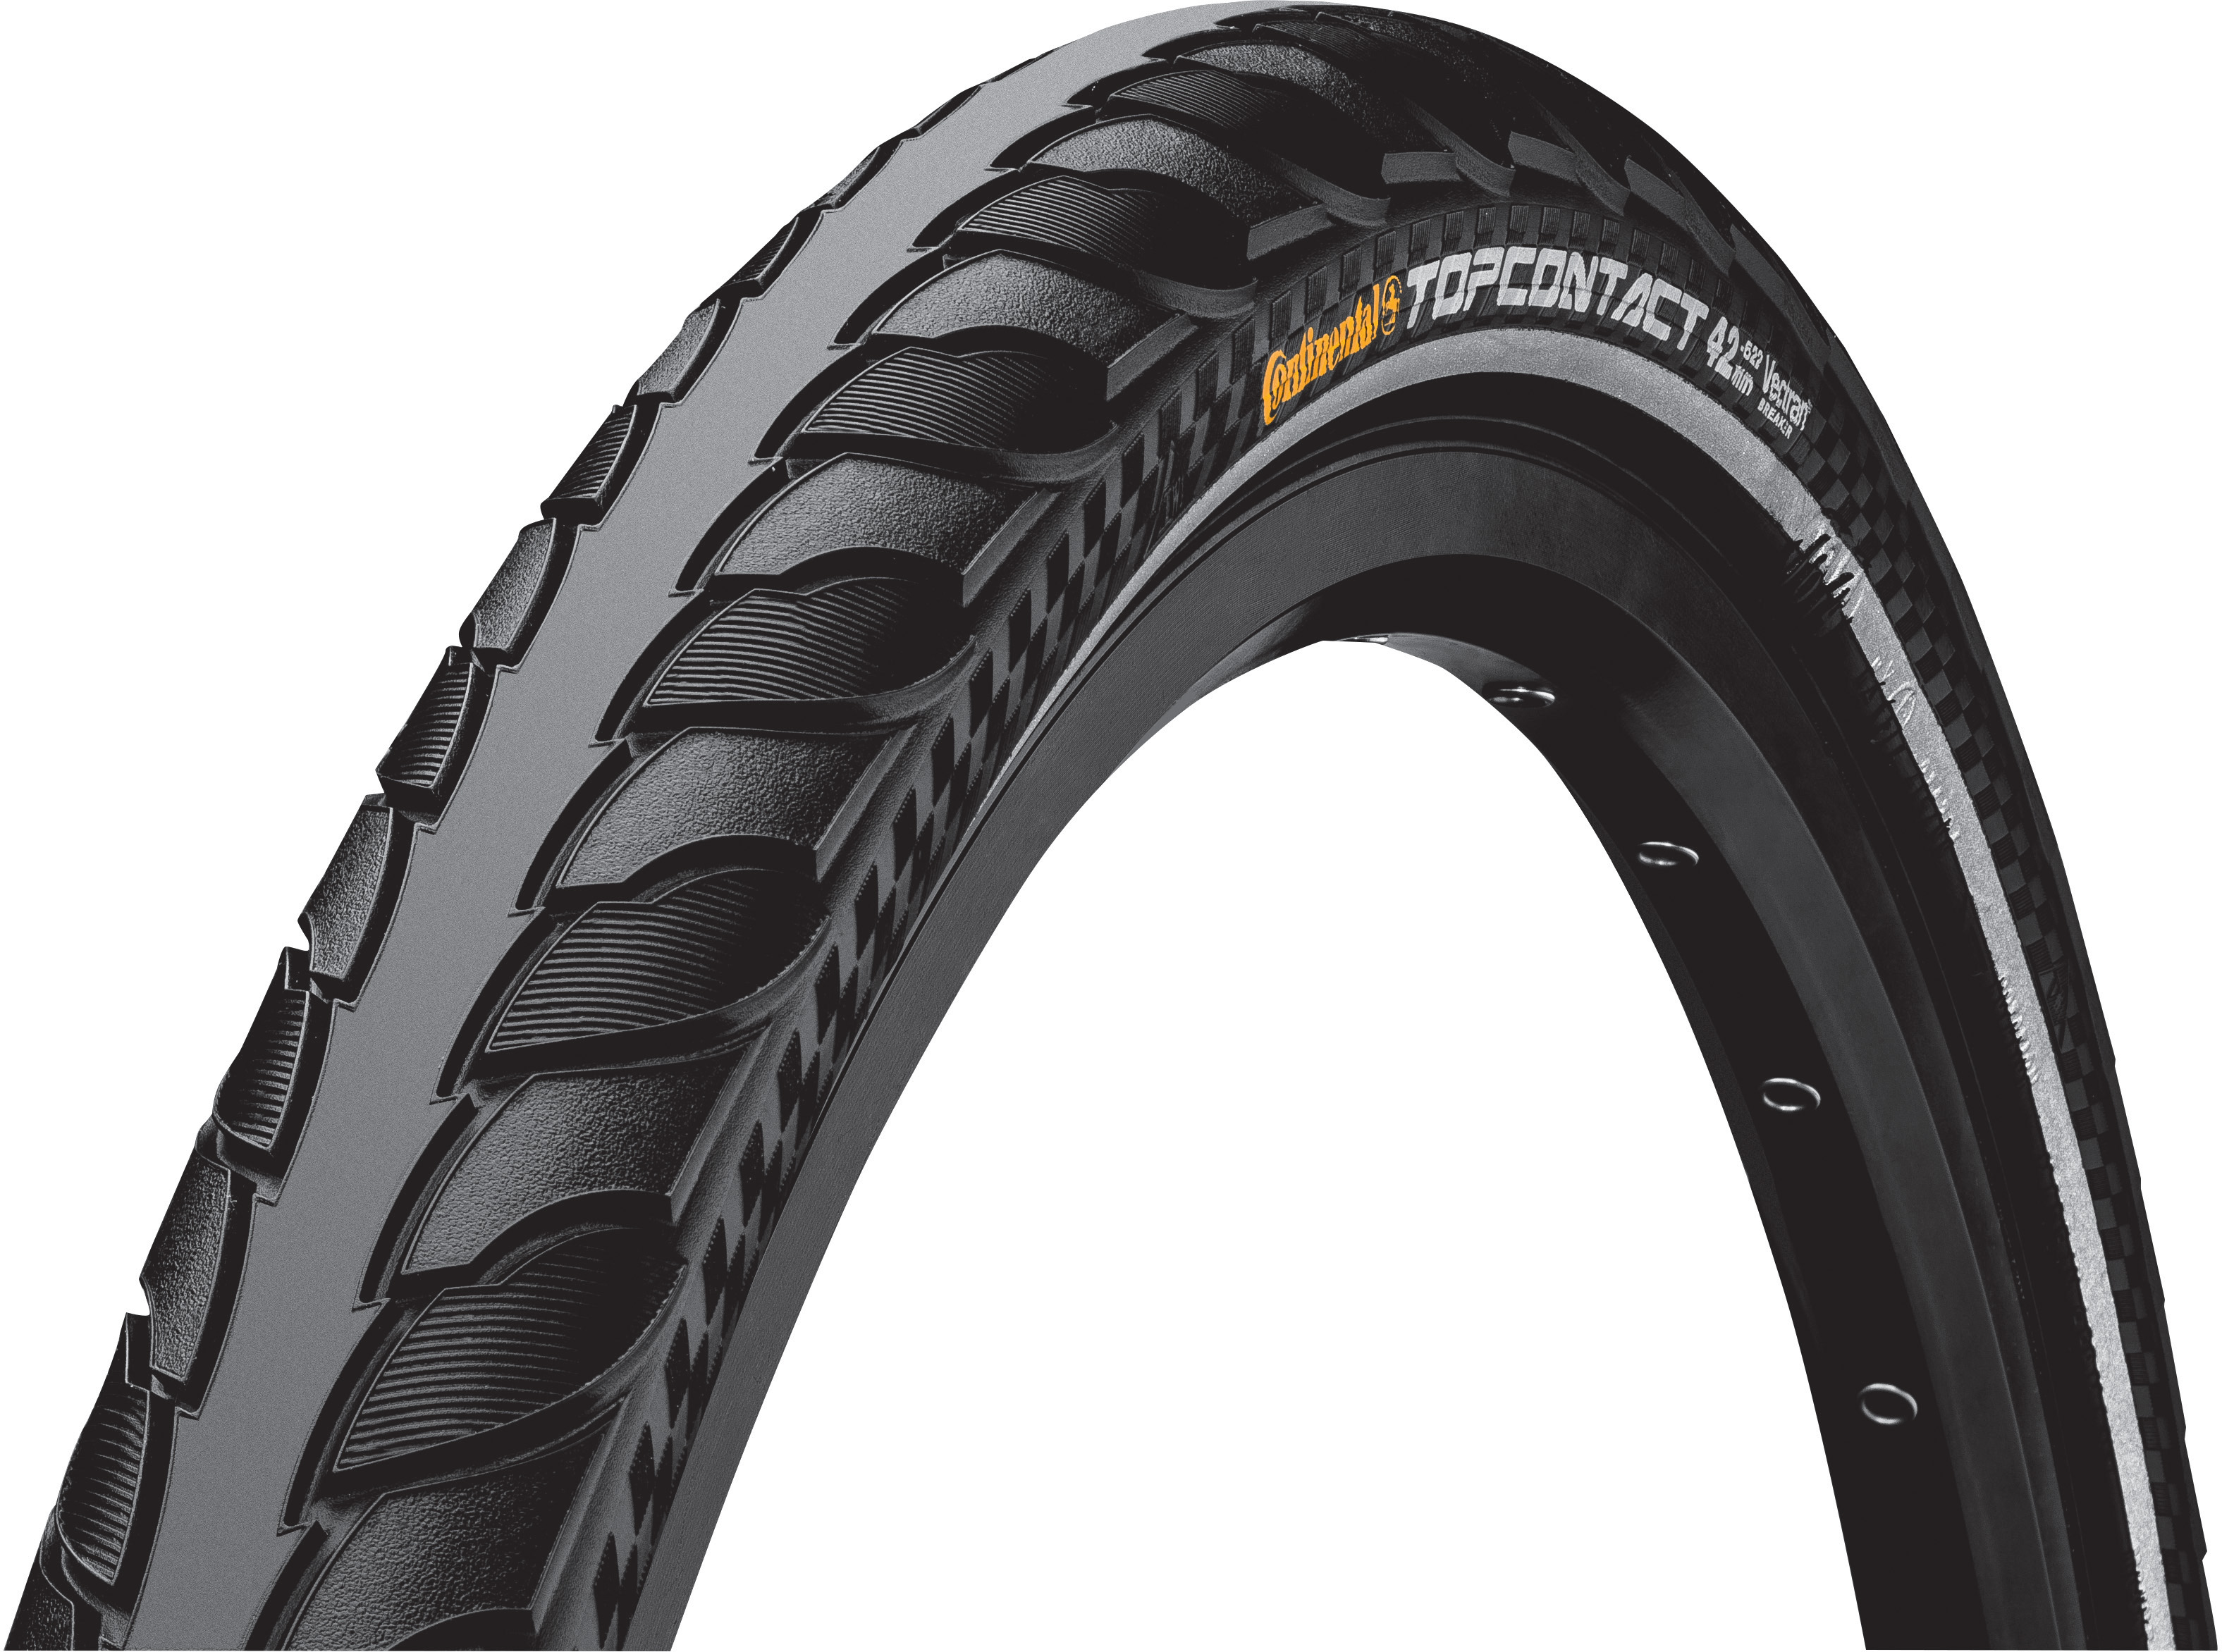 Continental Top Contact II City Road Tyre | Tyres